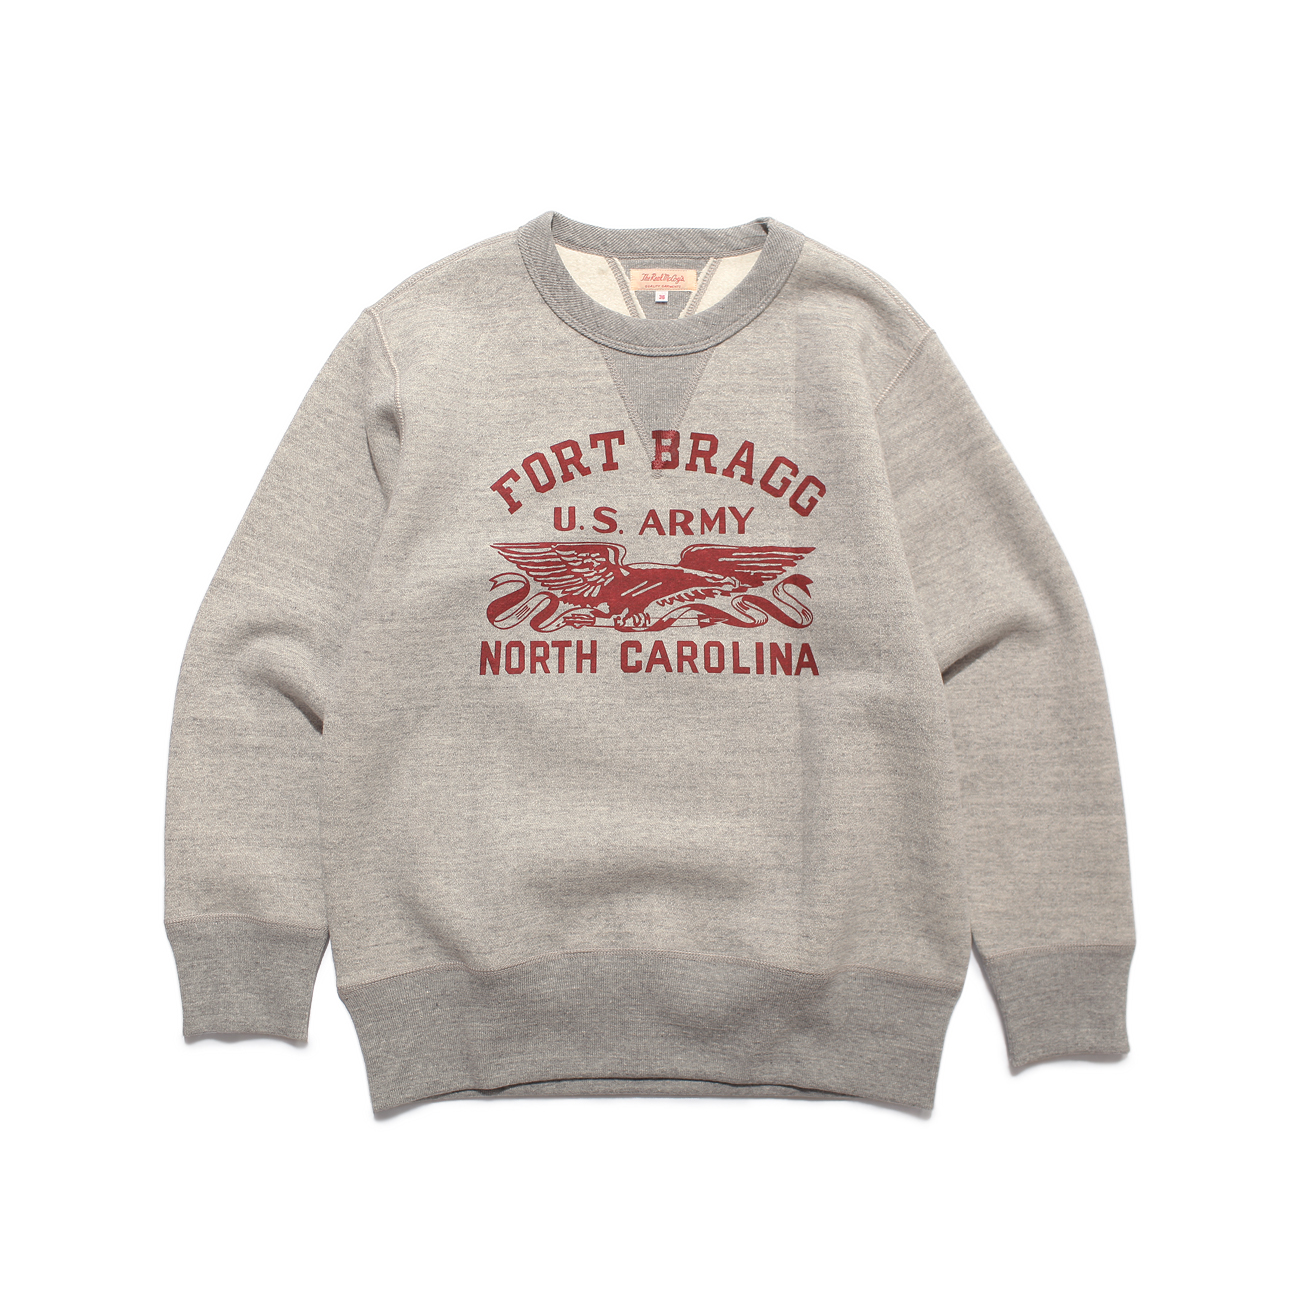 Military Sweatshirt / Fort Bragg